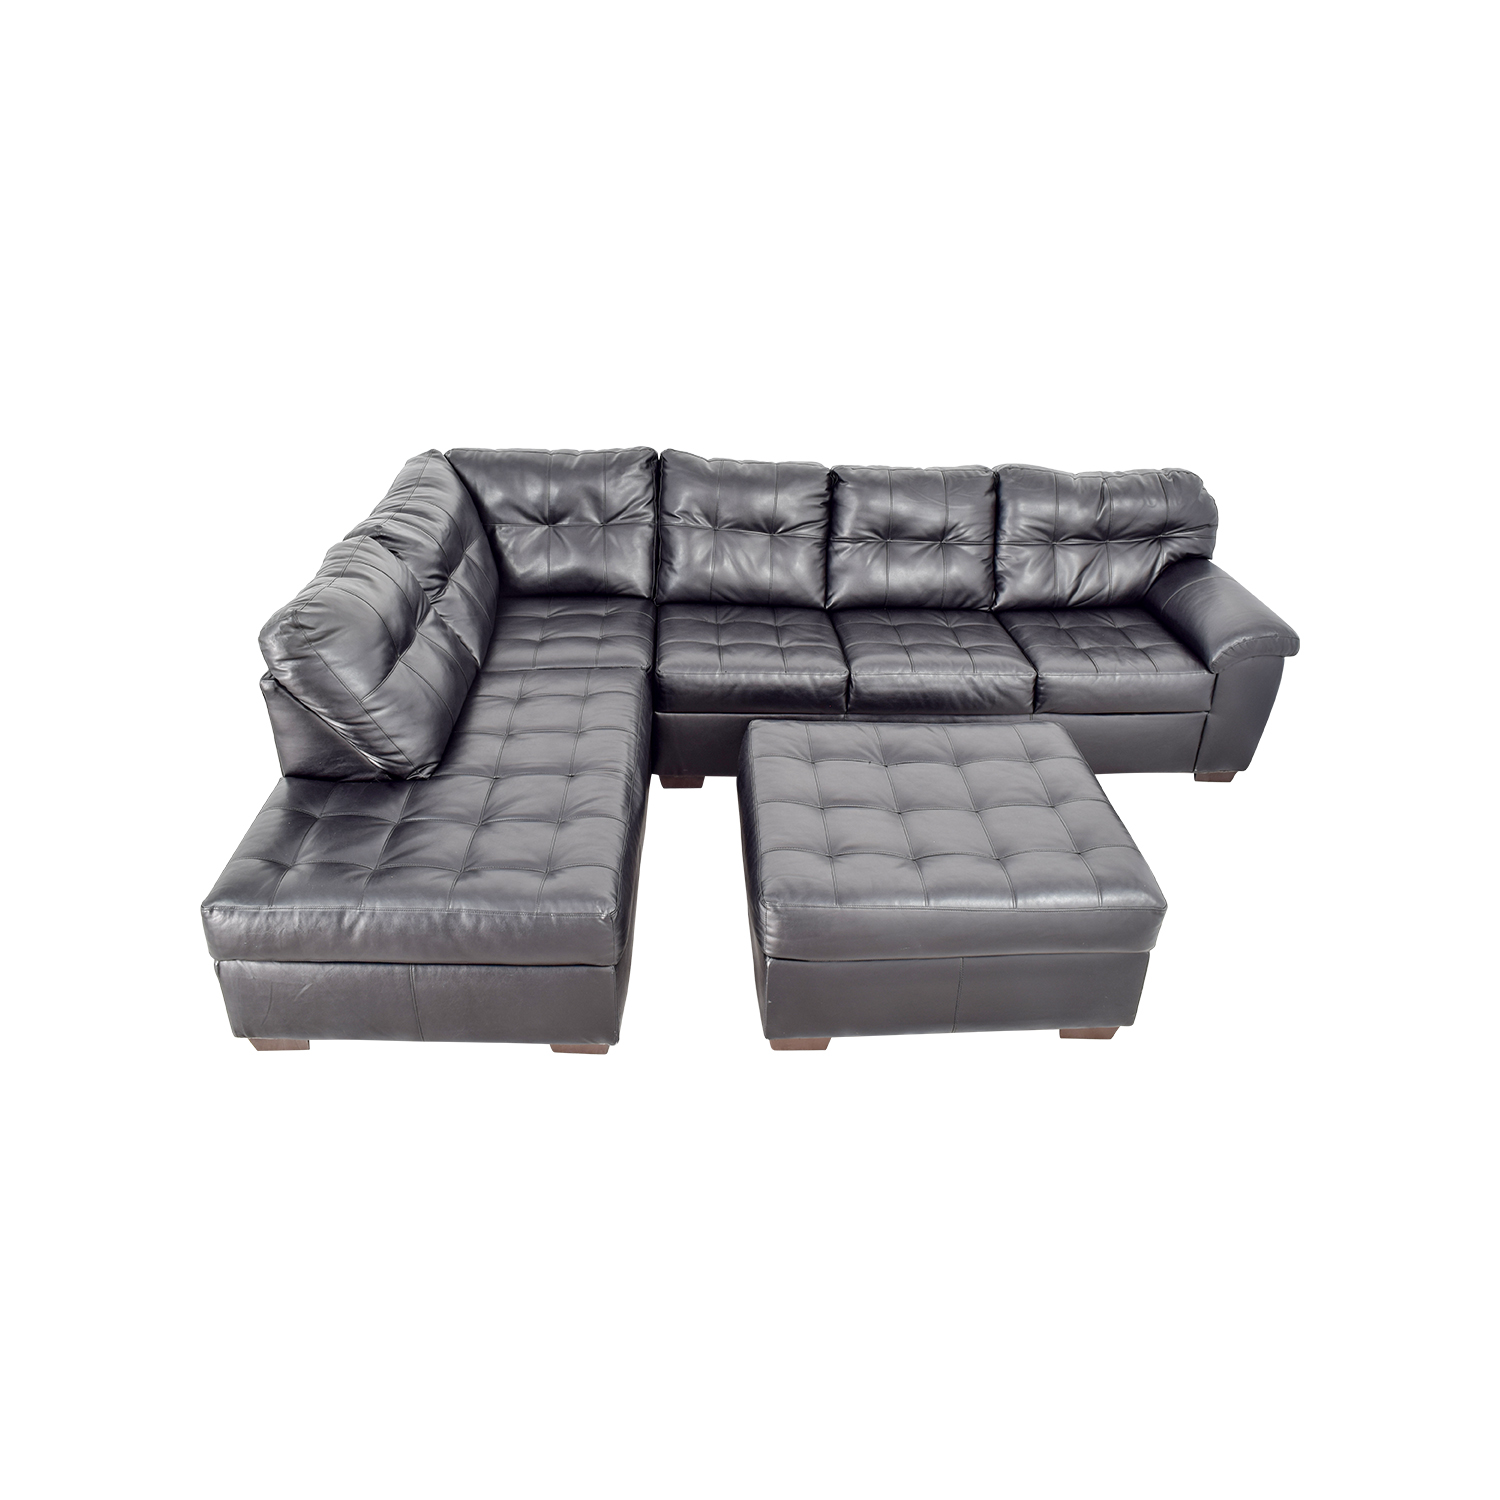 Wondrous 81 Off Black Leather Tufted Sectional Sofa And Ottoman Sofas Frankydiablos Diy Chair Ideas Frankydiabloscom